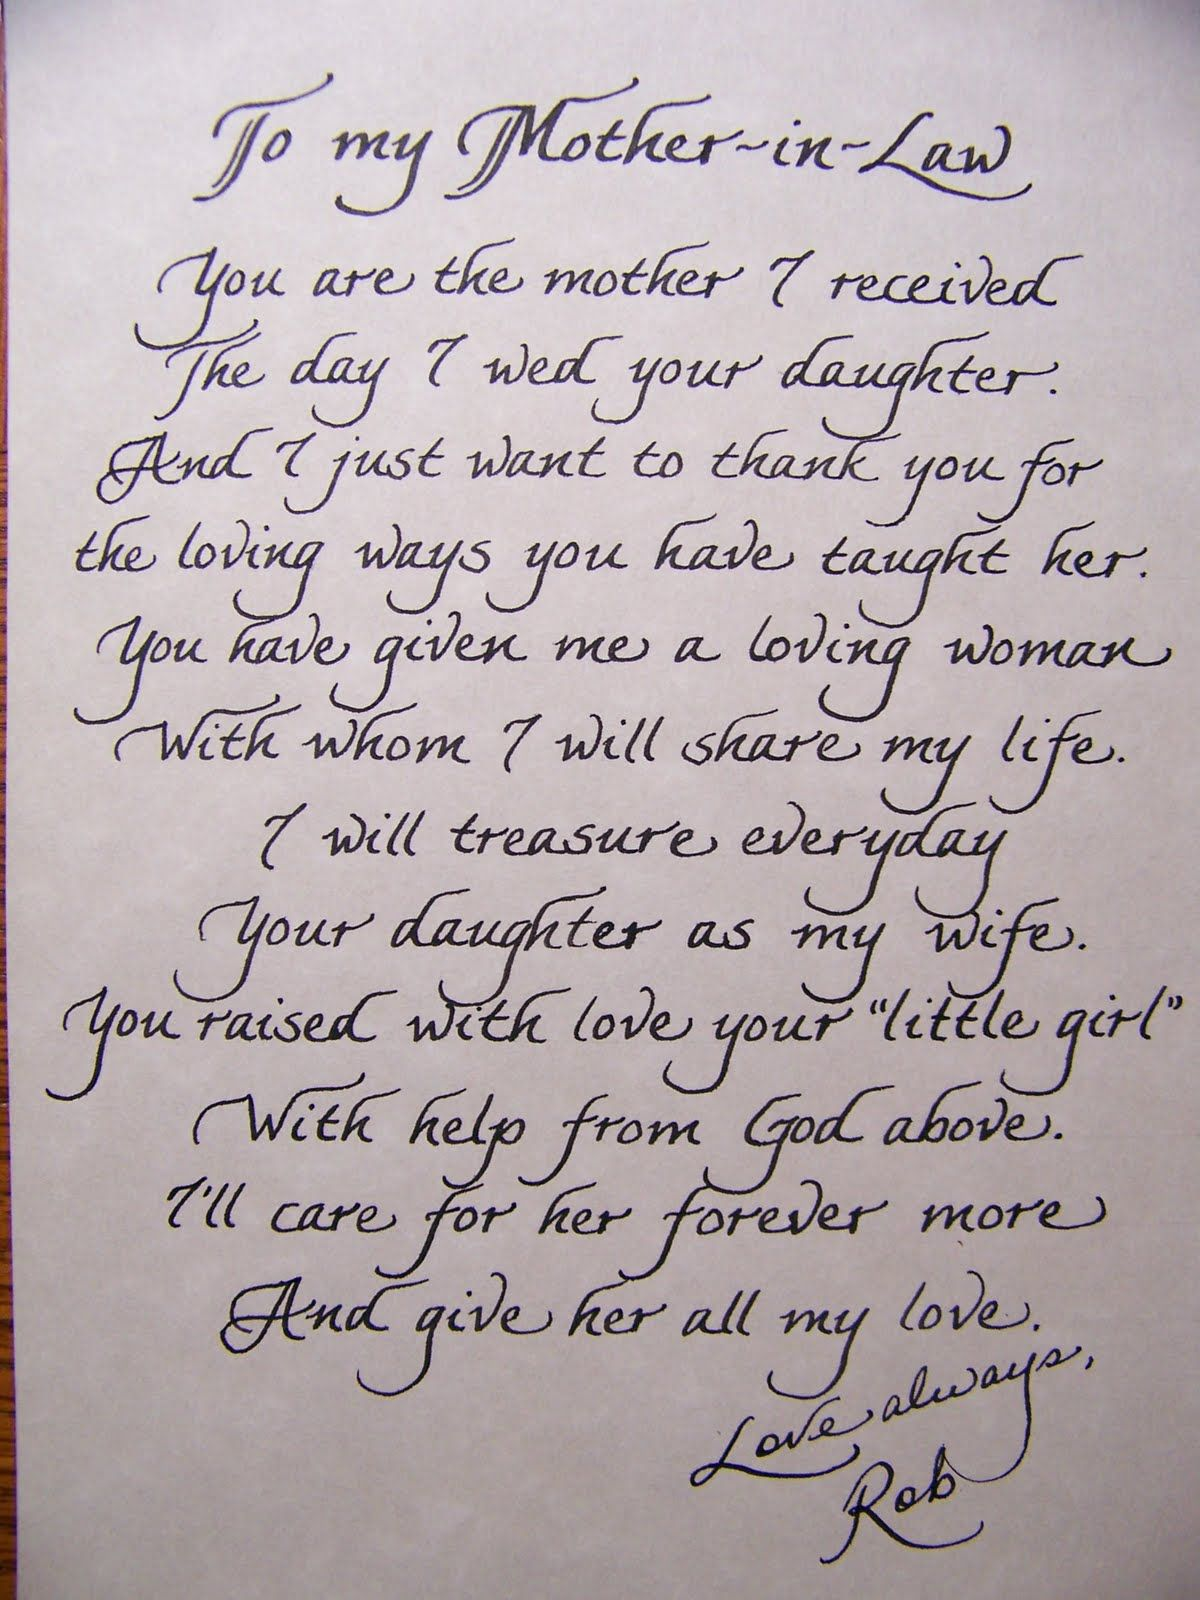 Wedding Gift For Dad And New Wife : poem to in laws on wedding day Wedding Pinterest Wedding ...